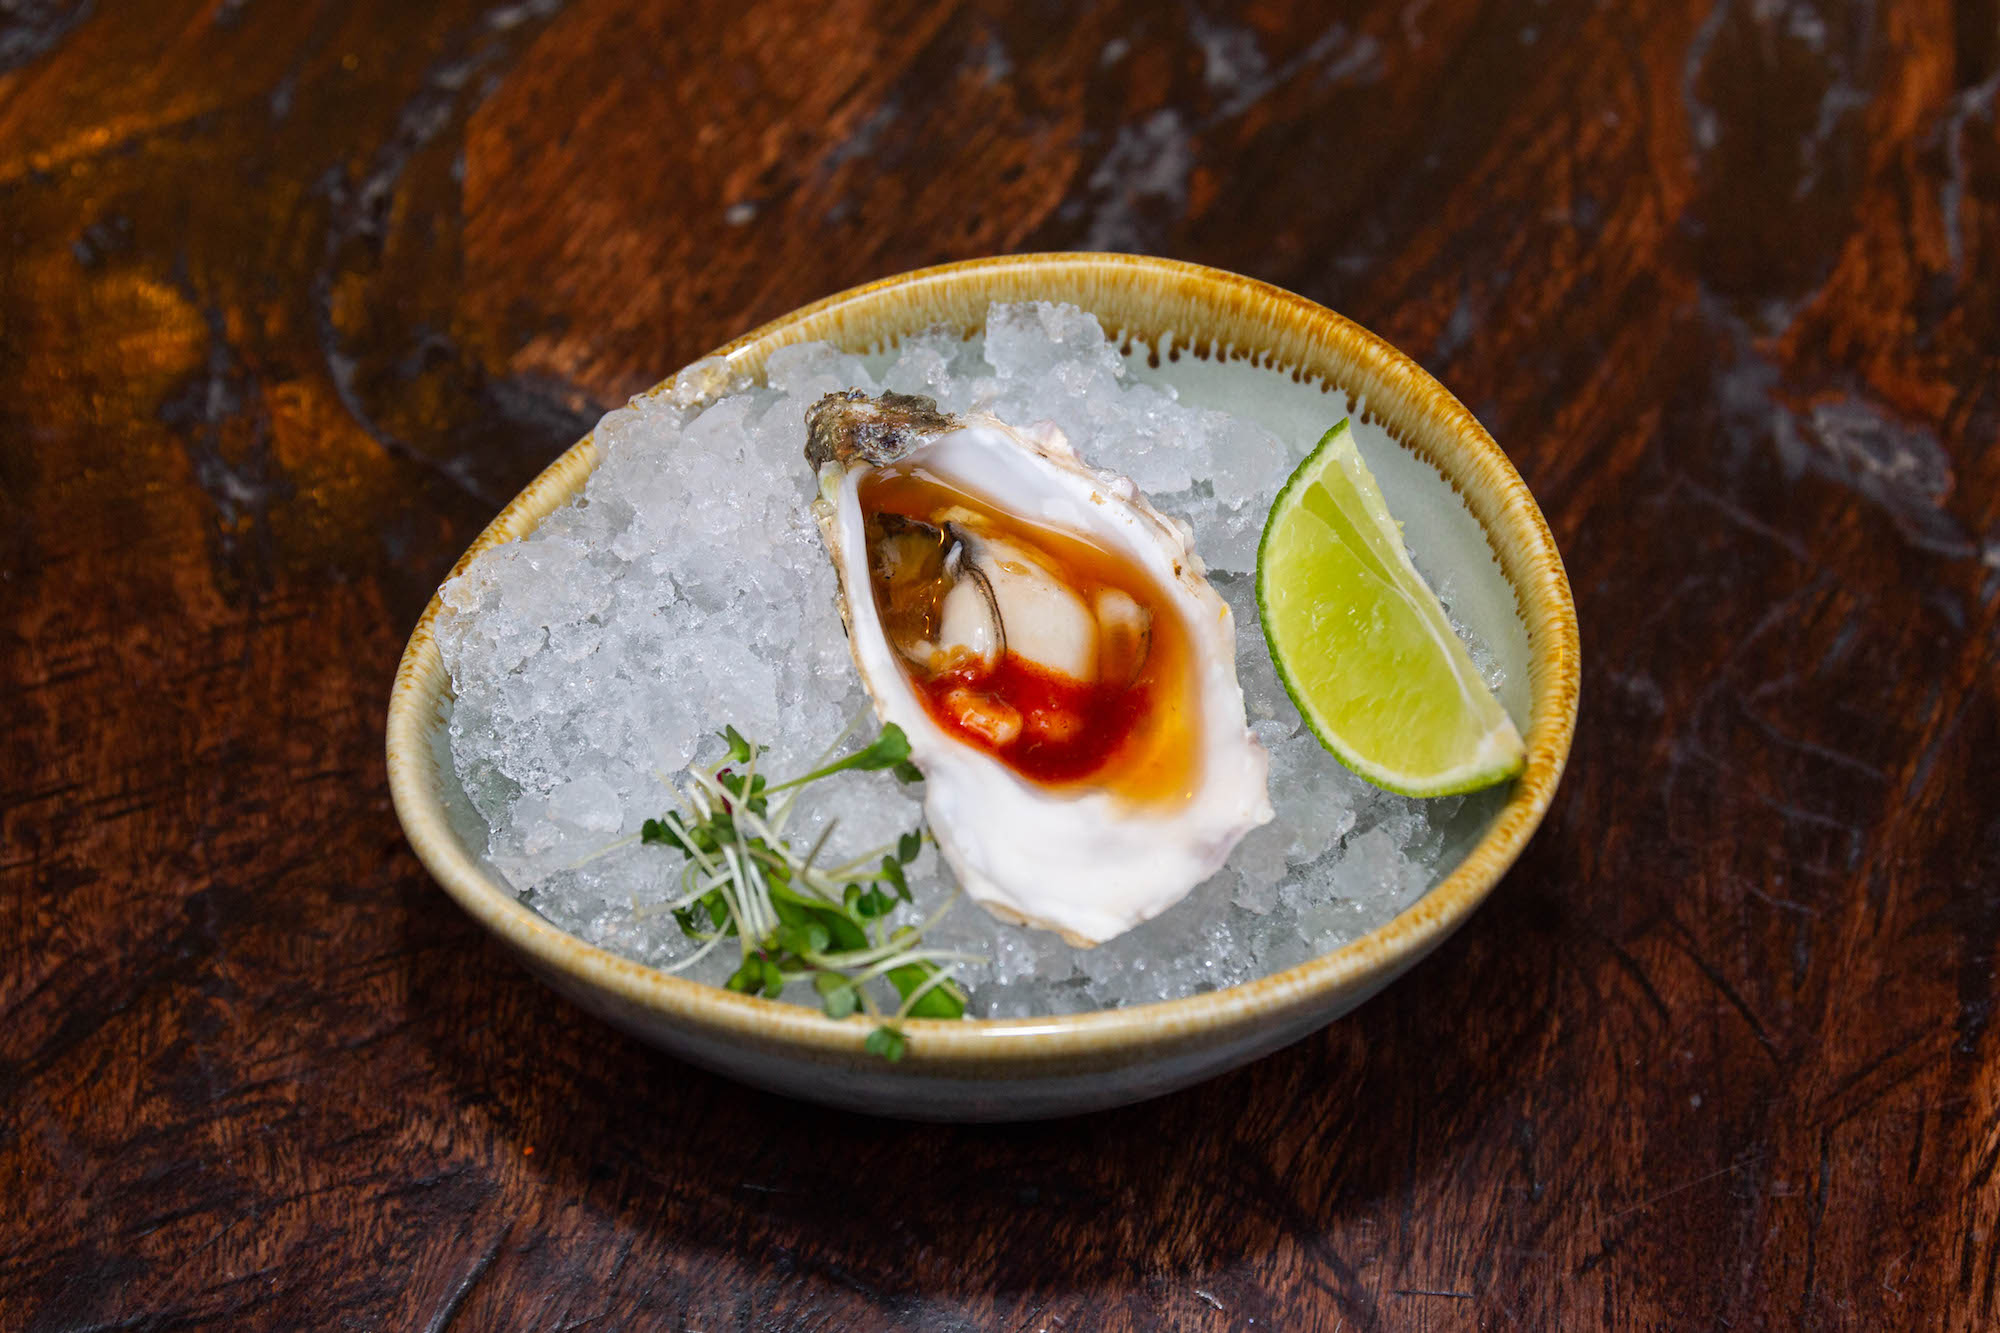 Oyster with kimchee and ponzu sauce